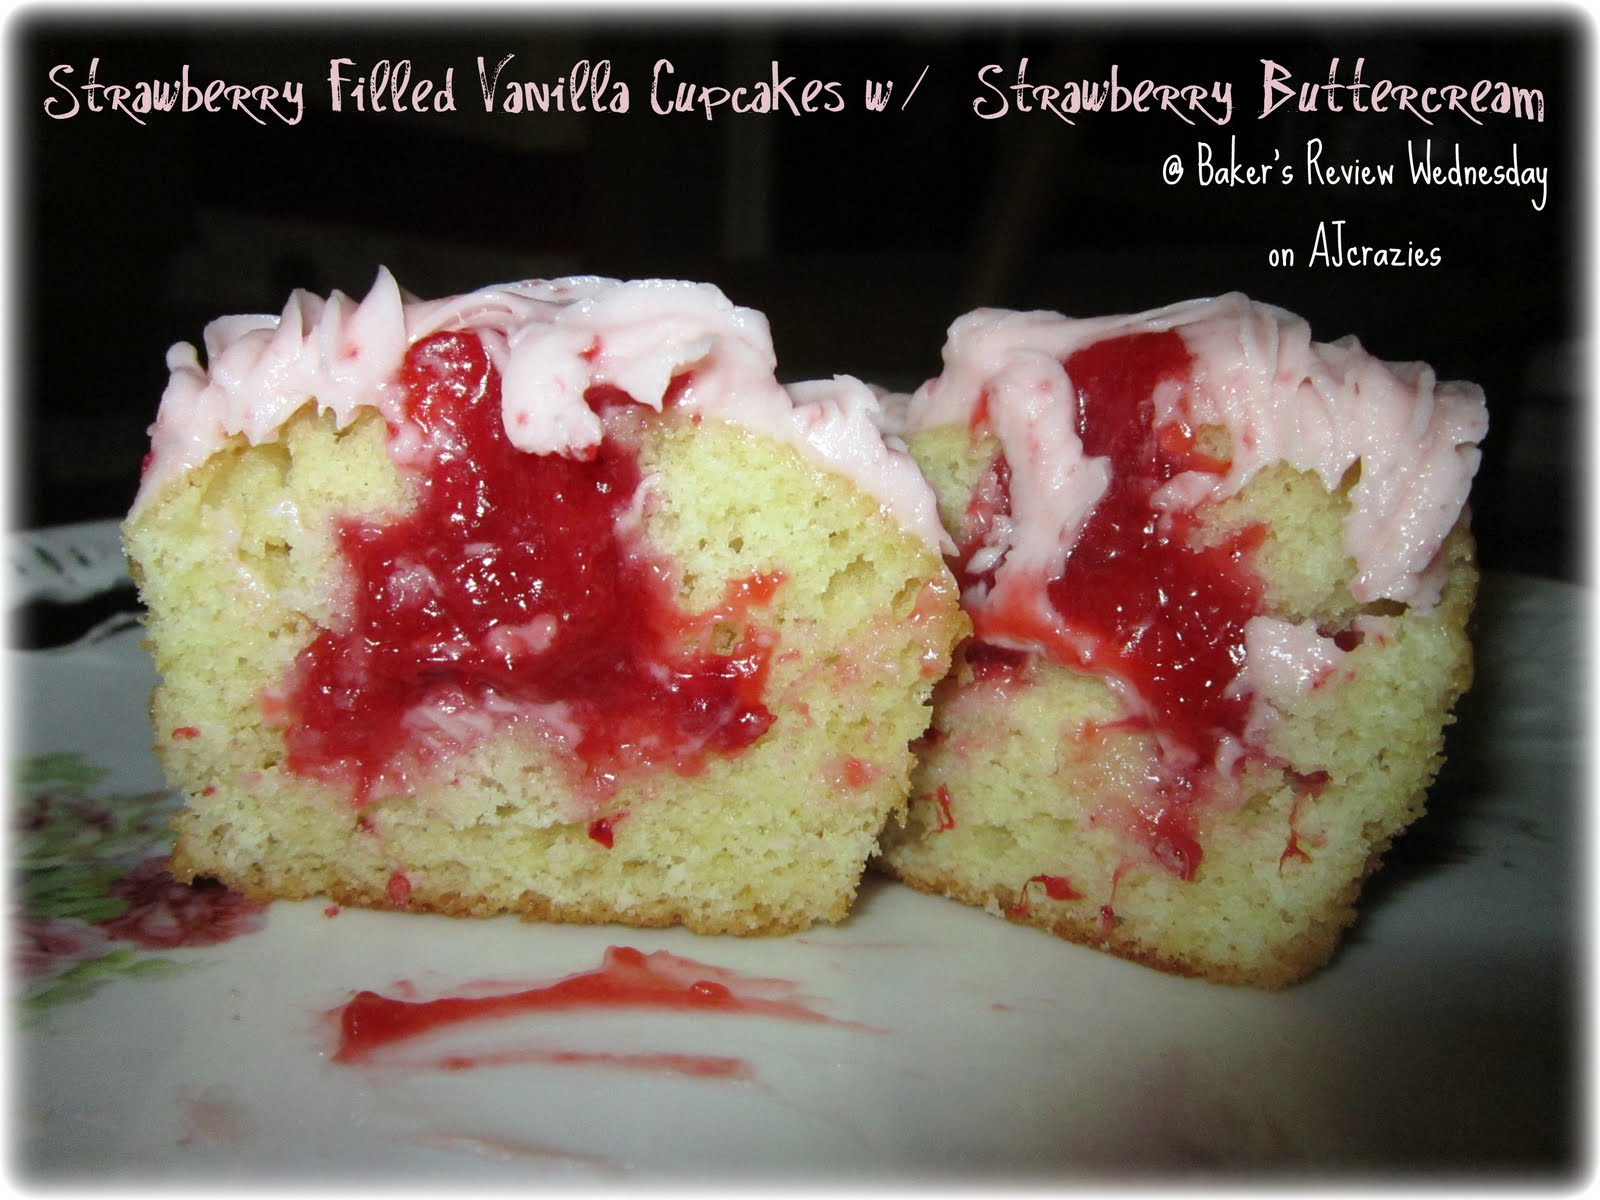 14: Strawberry Filled Vanilla Cupcakes w/ Strawberry Buttercream